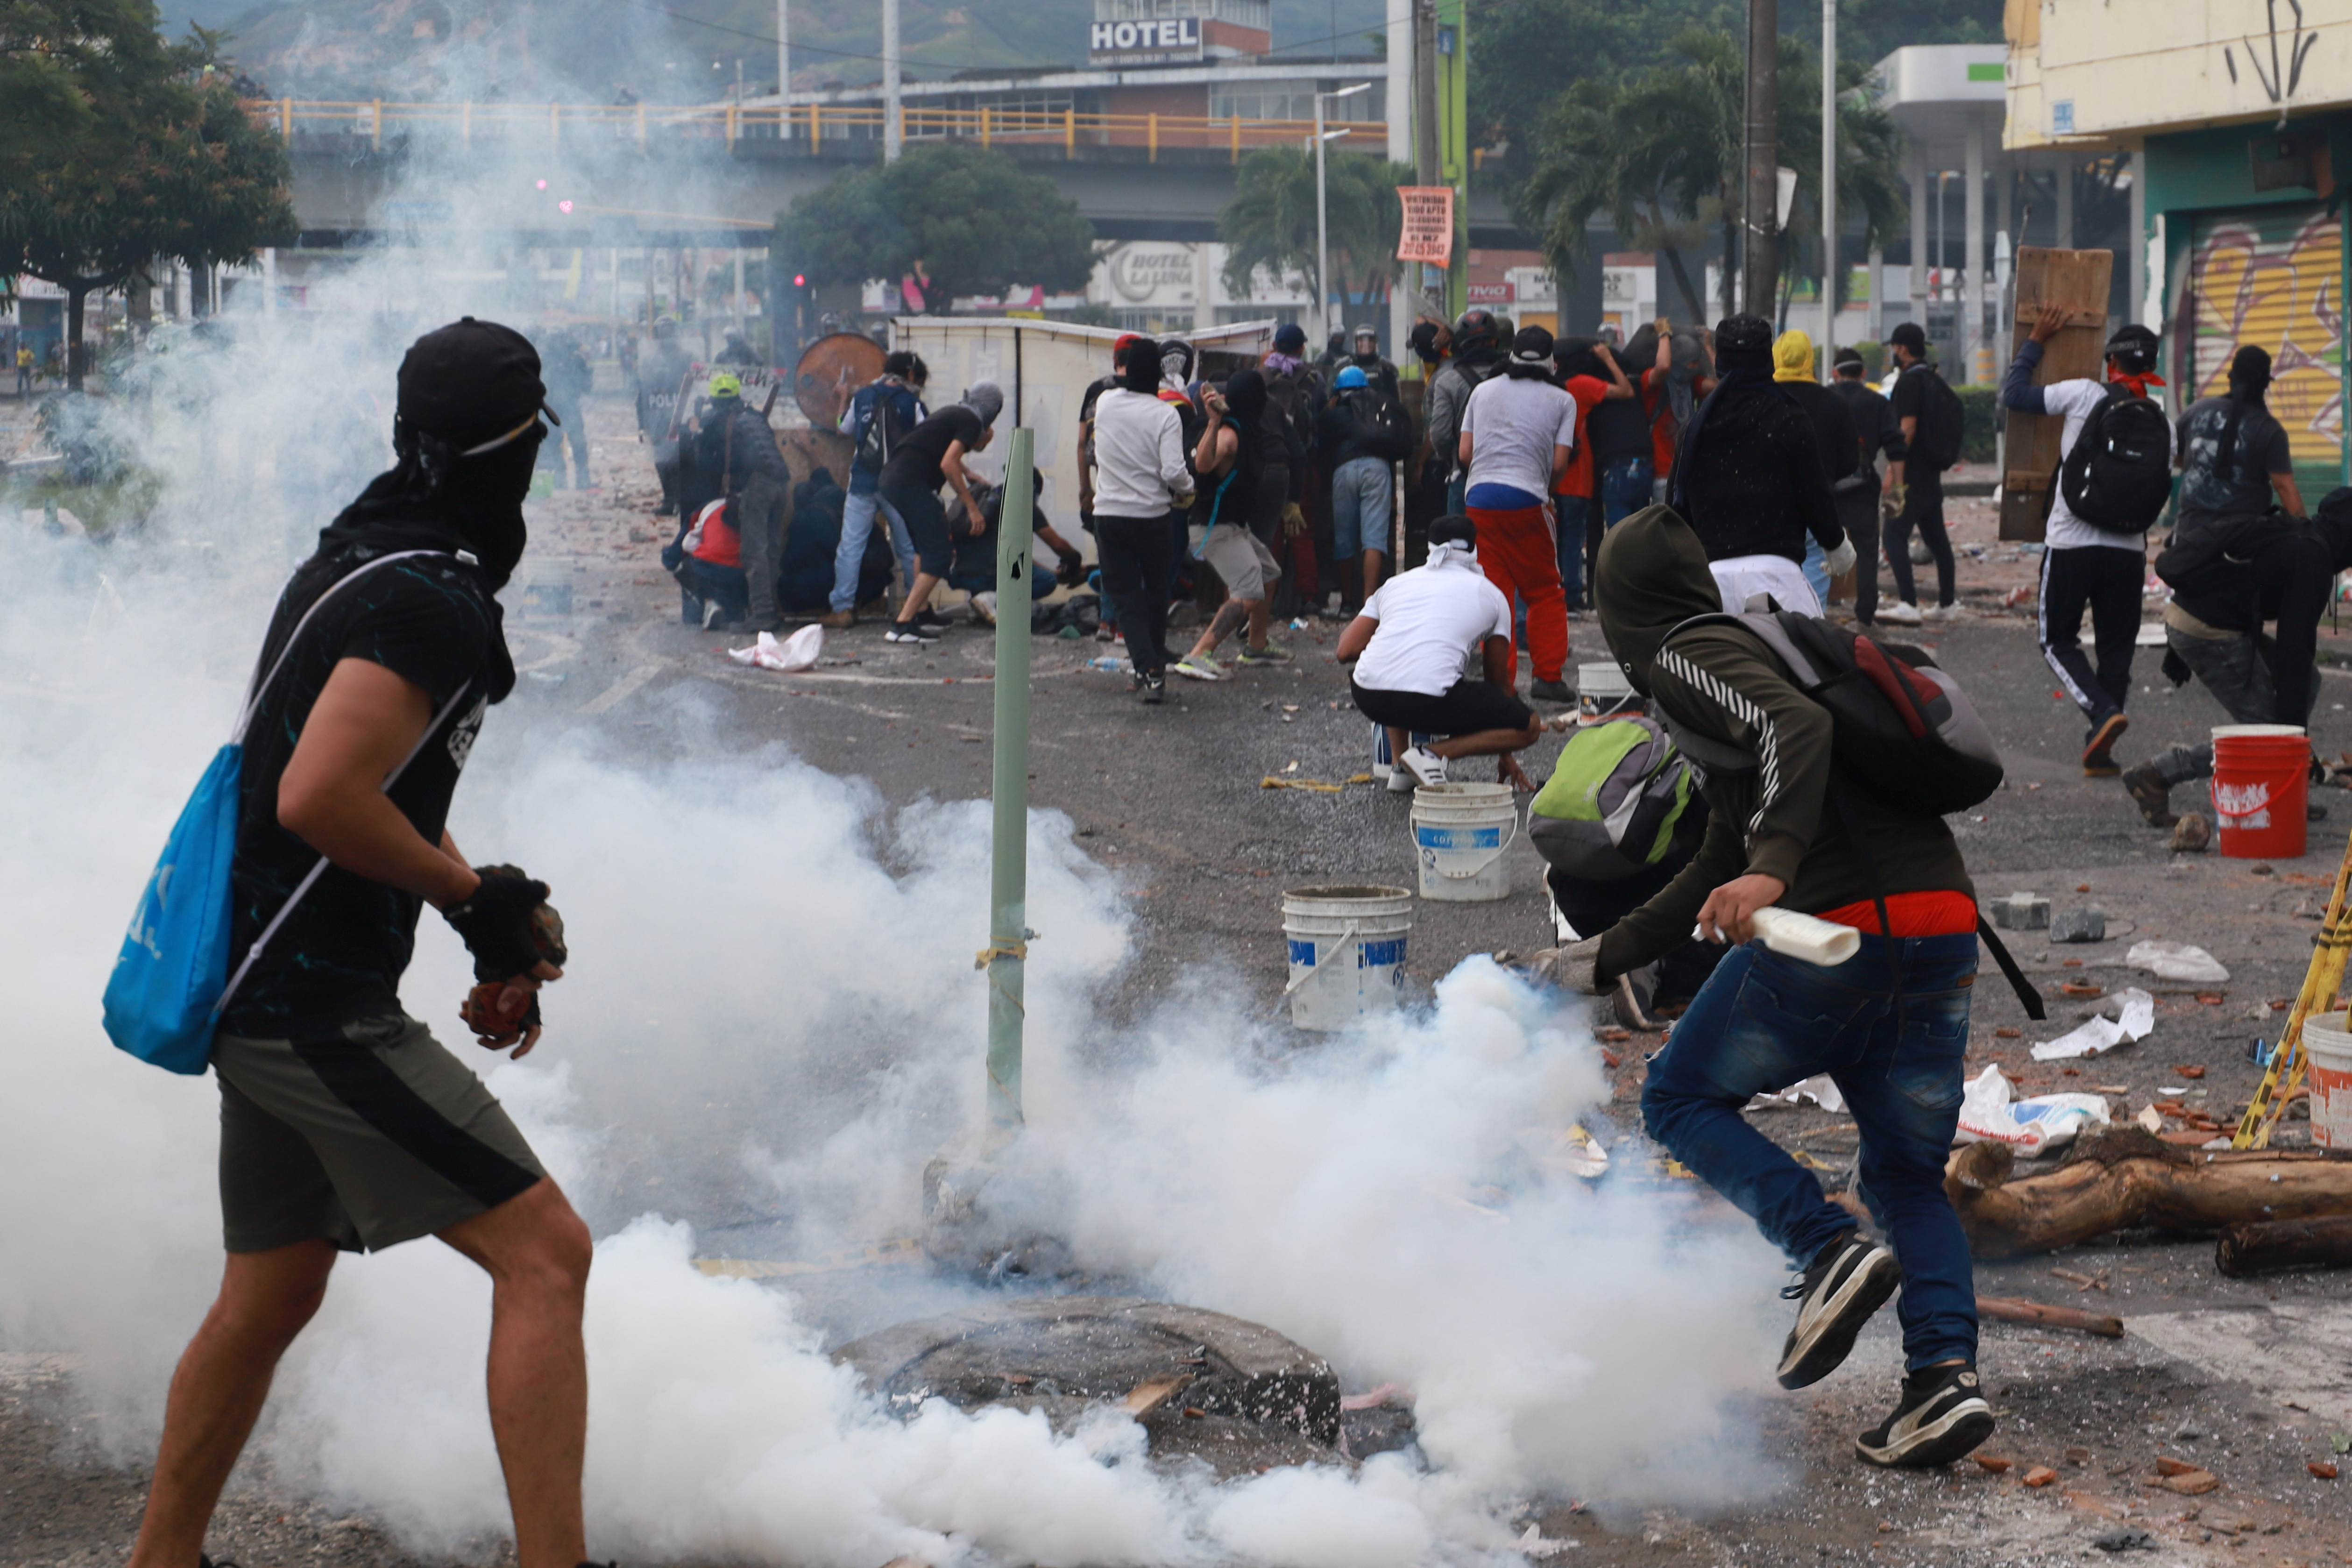 Demonstrators clash with members of the security forces during a protest against what they say was police brutality exerted in recent protests against President Ivan Duque's government's tax reform in Cali, Colombia May 3, 2021. REUTERS/Juan Bautista